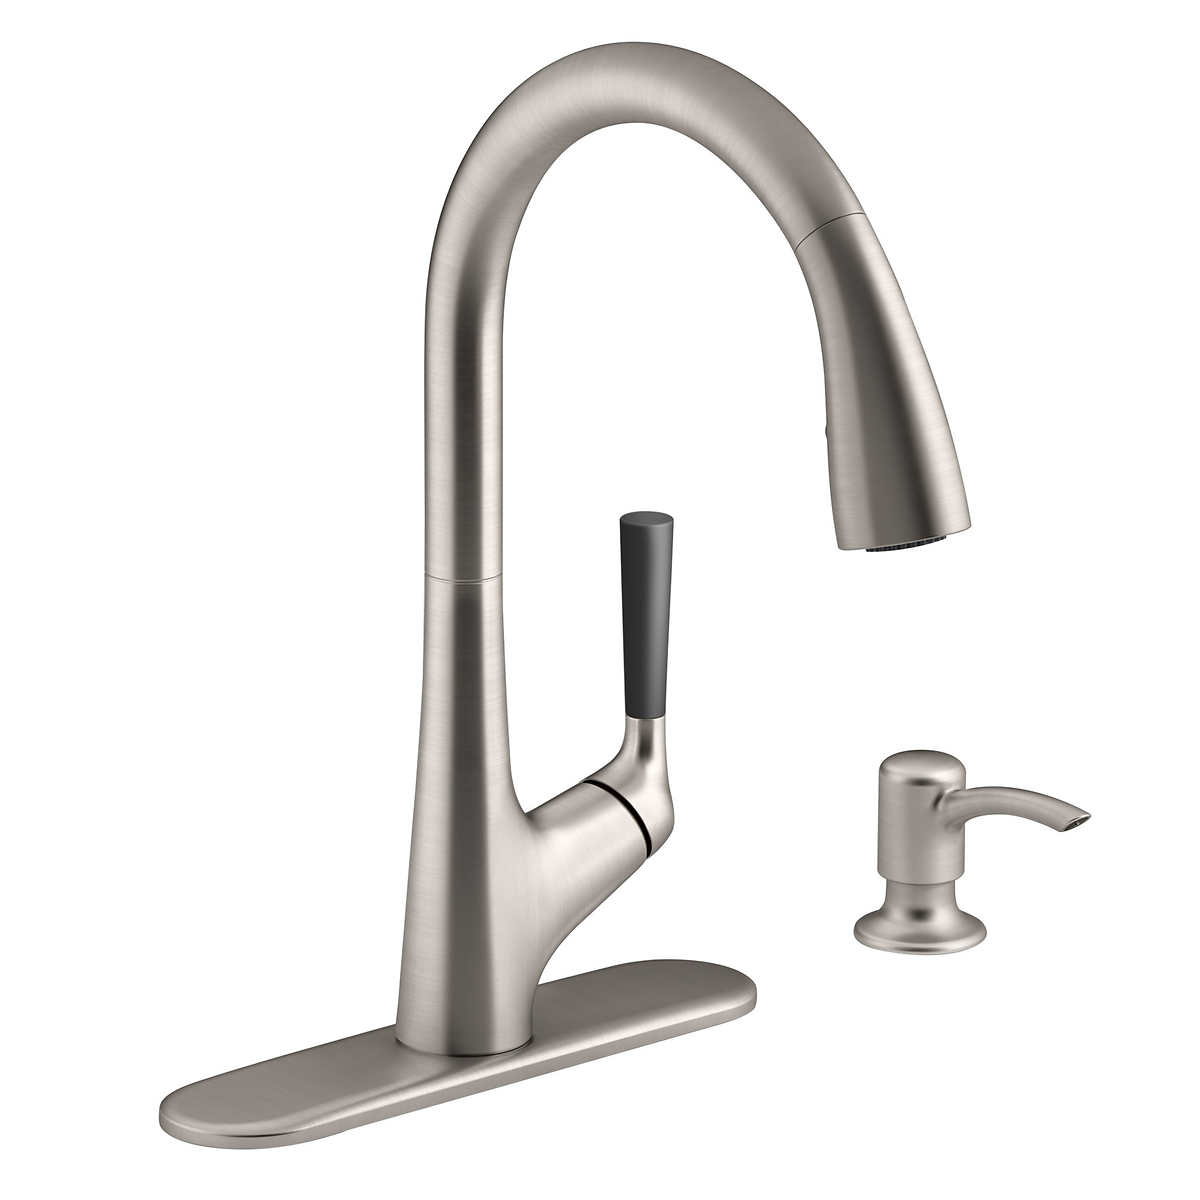 Kohler malleco pull down kitchen sink faucet with soap for Faucet and soap dispenser placement